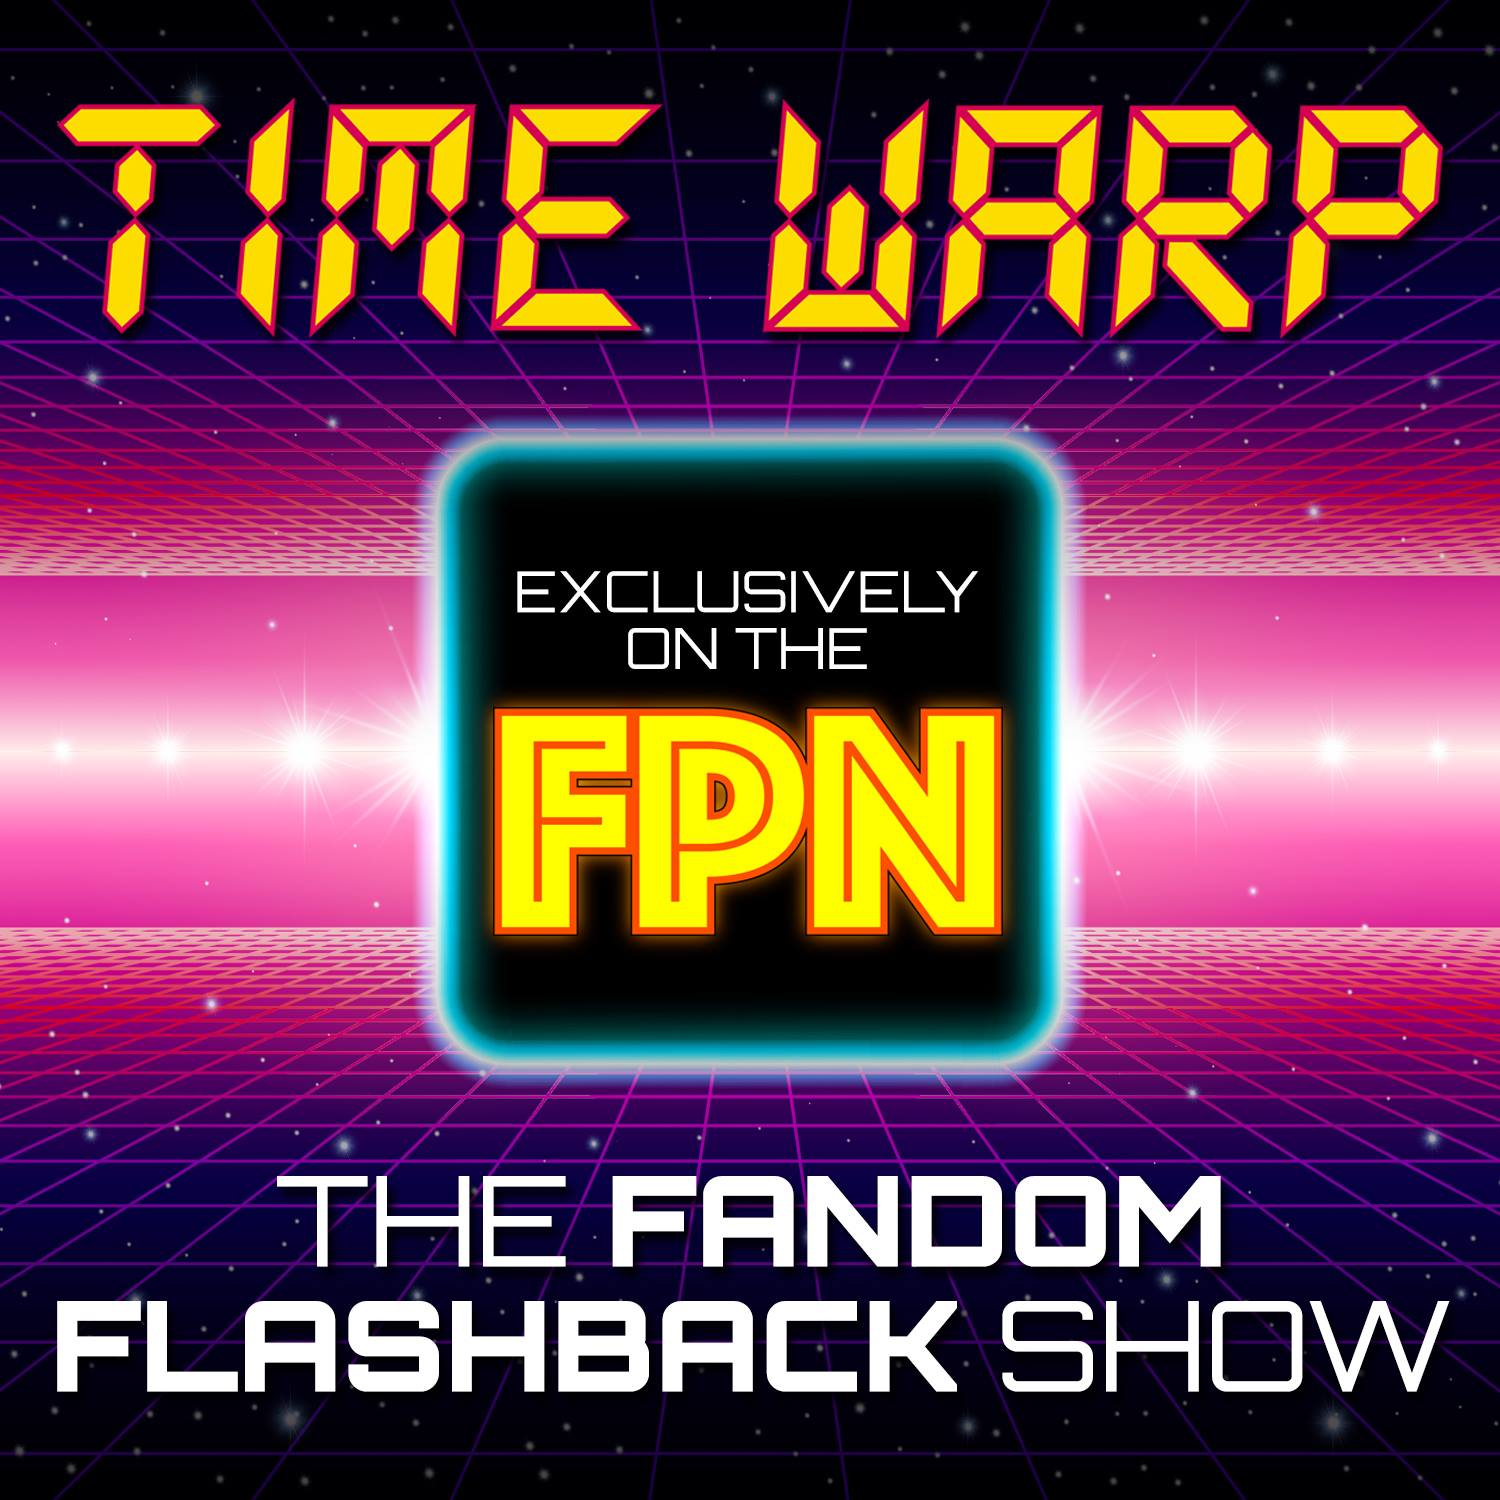 Time Warp: 1985 The Movies, Part 1